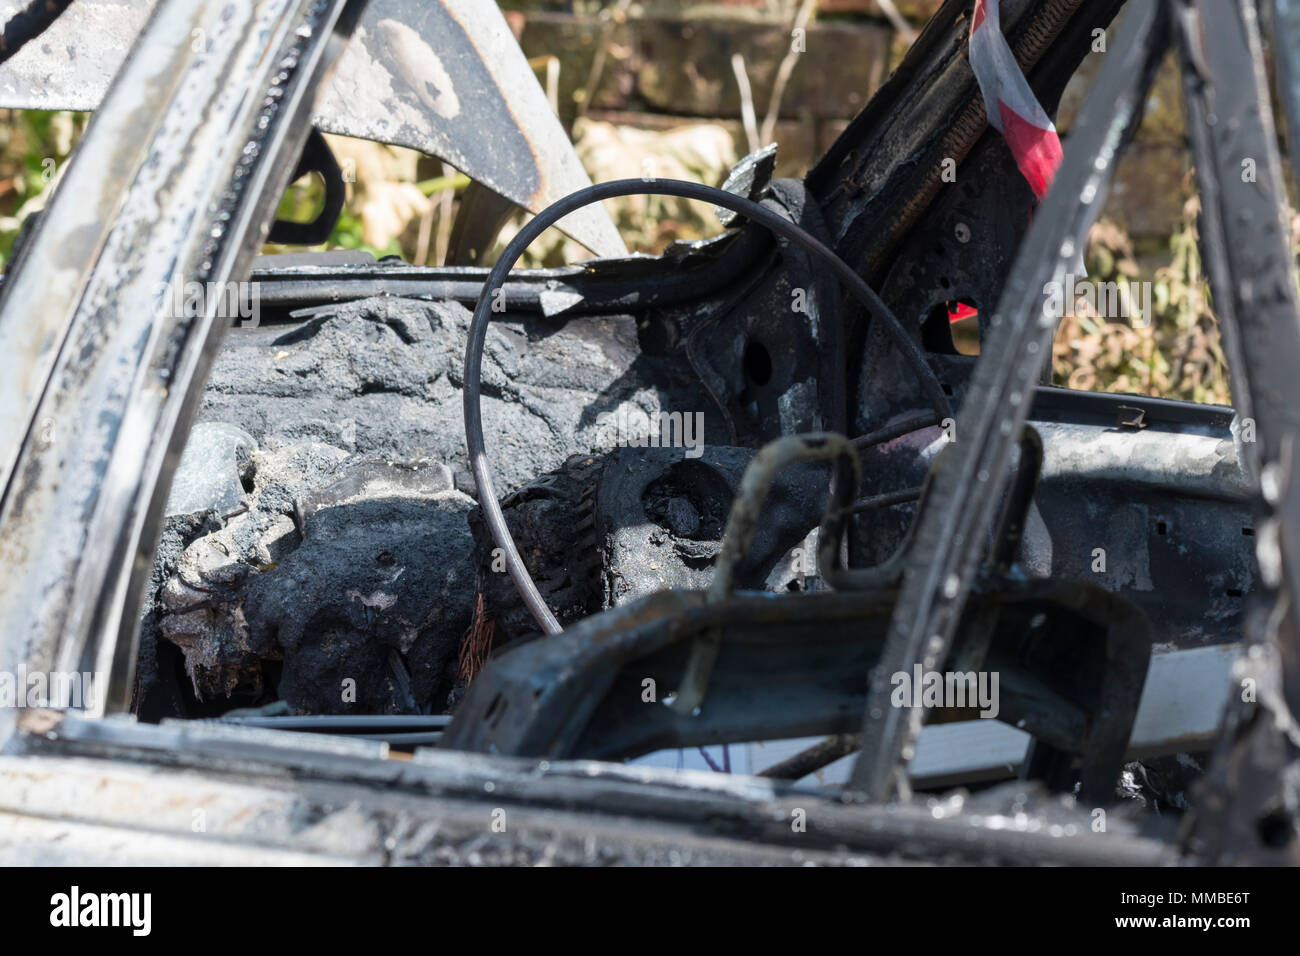 Burned out abandoned car after a fire, in the UK. Burnt out car. Auto fire. - Stock Image